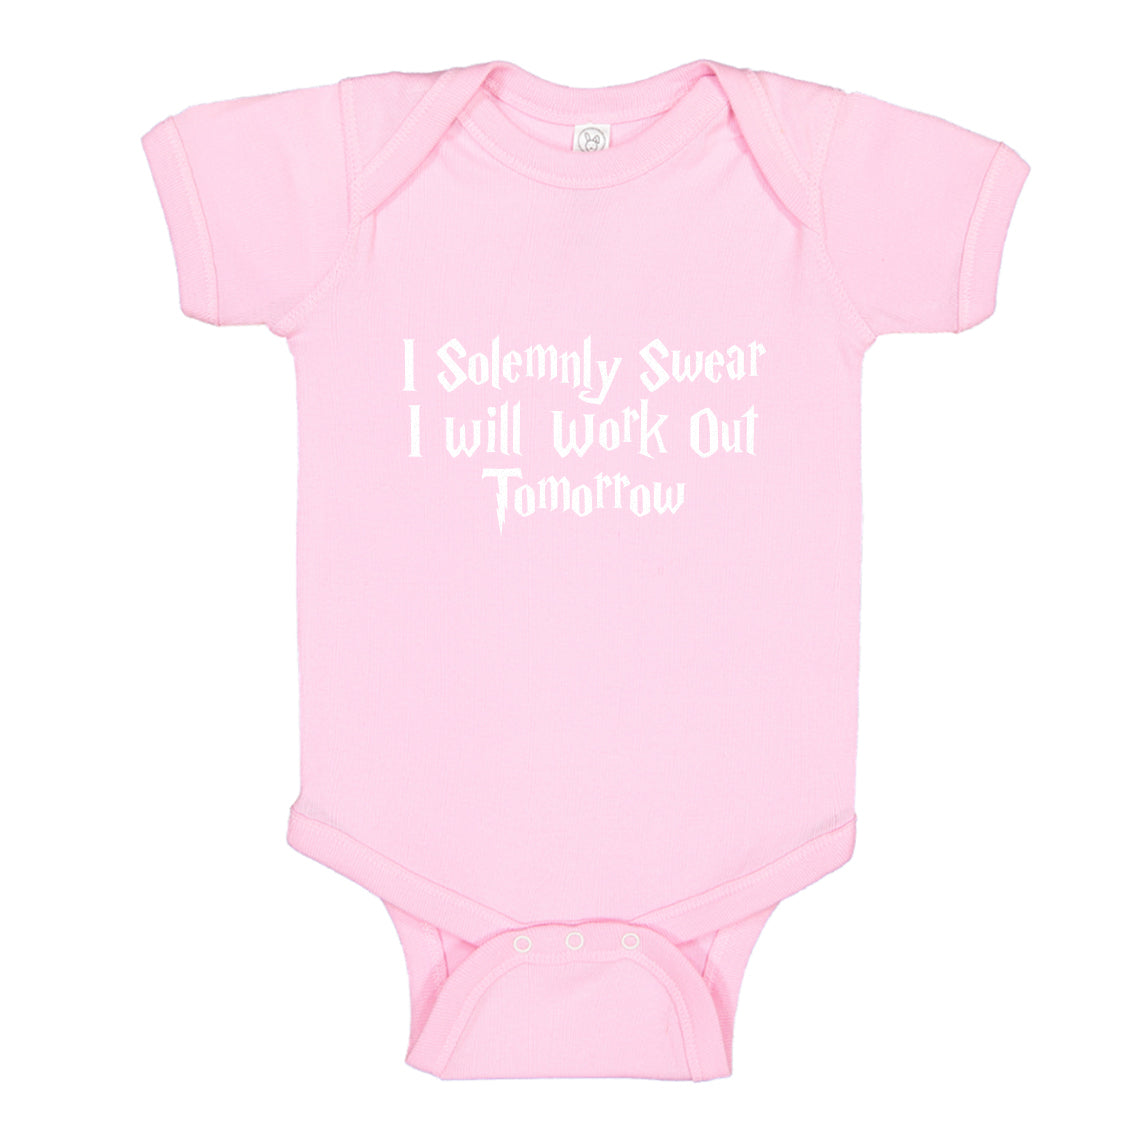 2cb2b894c ... Baby Onesie Solemnly Swear to Work Out 100% Cotton Infant Bodysuit